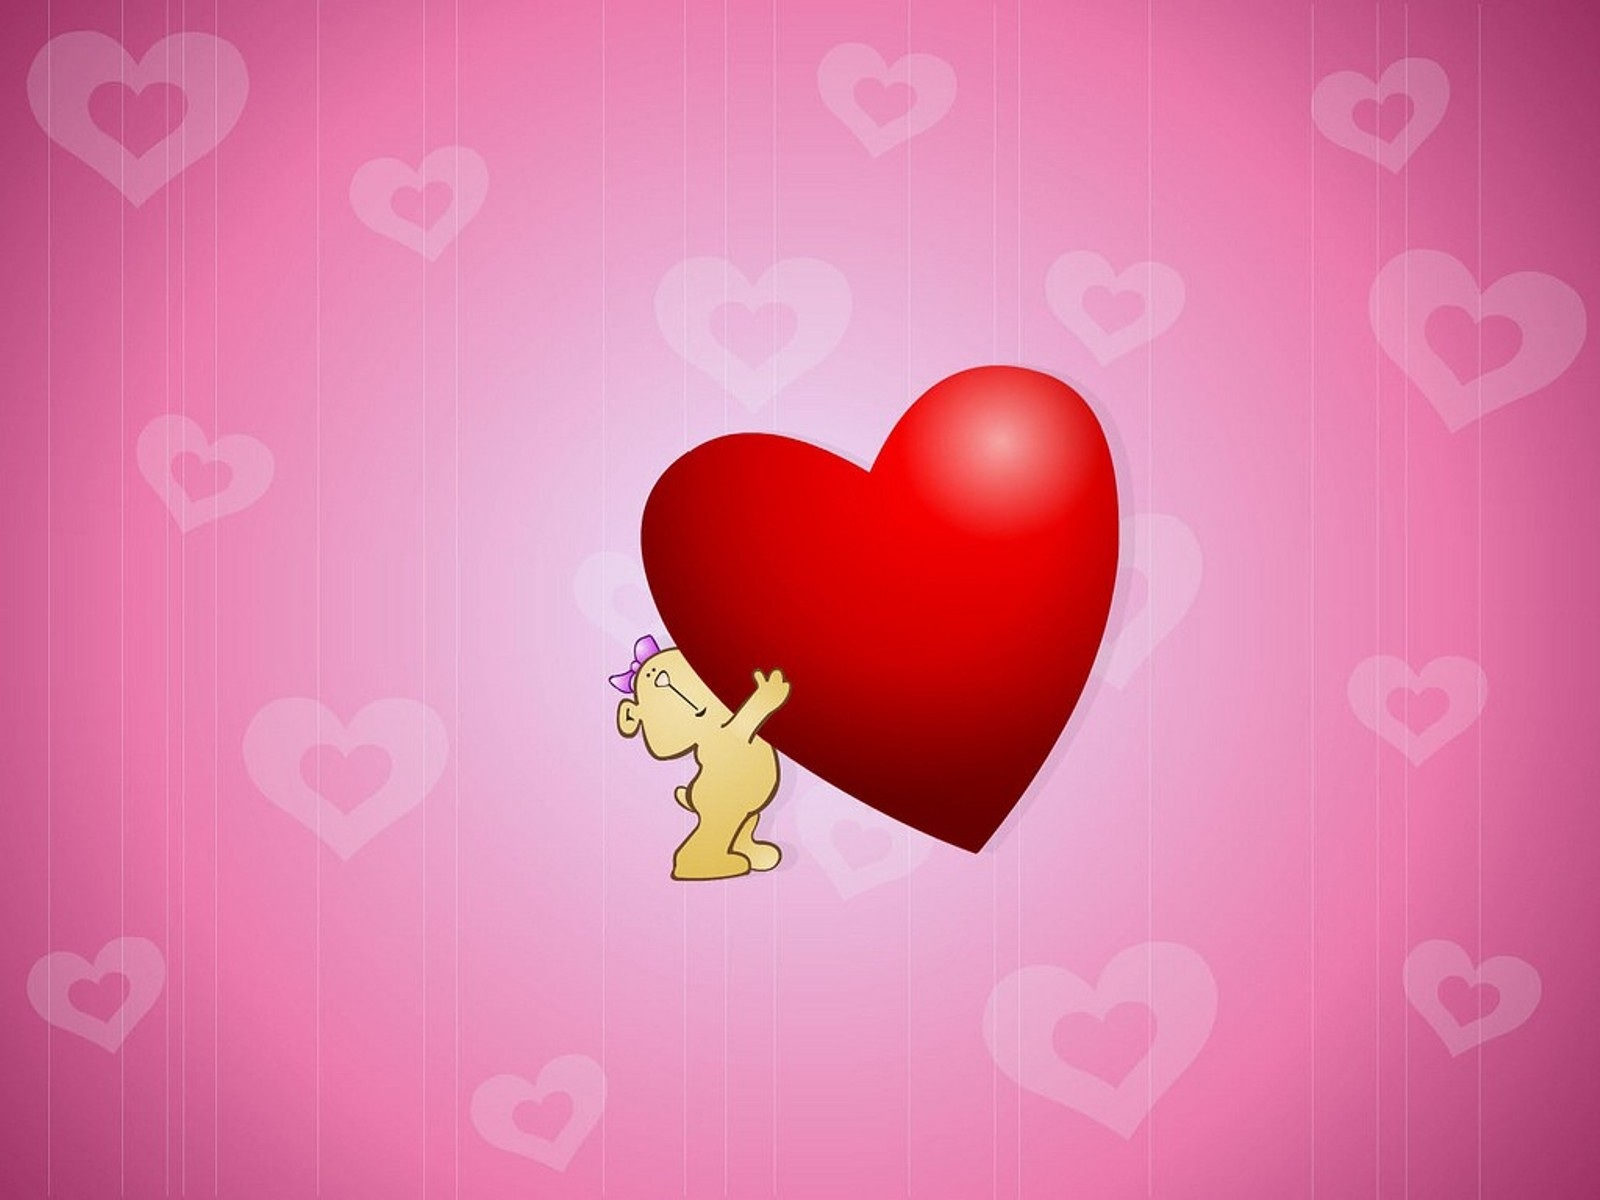 cute Hug Love Heart Wallpaper 1600x1200 resolution wallpaper download Best-Wallpaper.Net